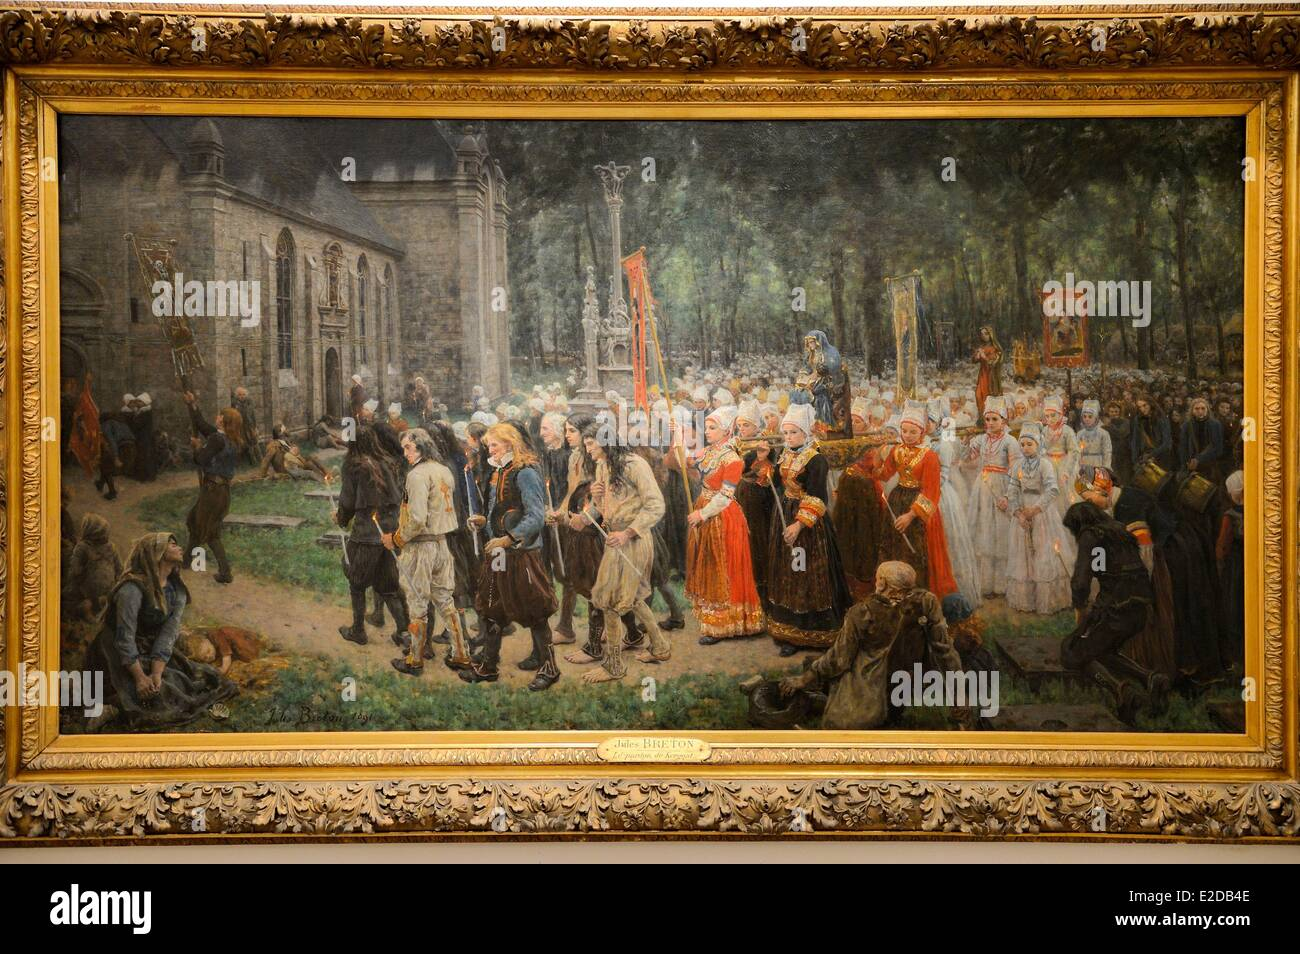 France, Finistere, Quimper, musee des Beaux Arts, The Pardon of Kergoat (1891) by the painter Jules Breton Stock Photo